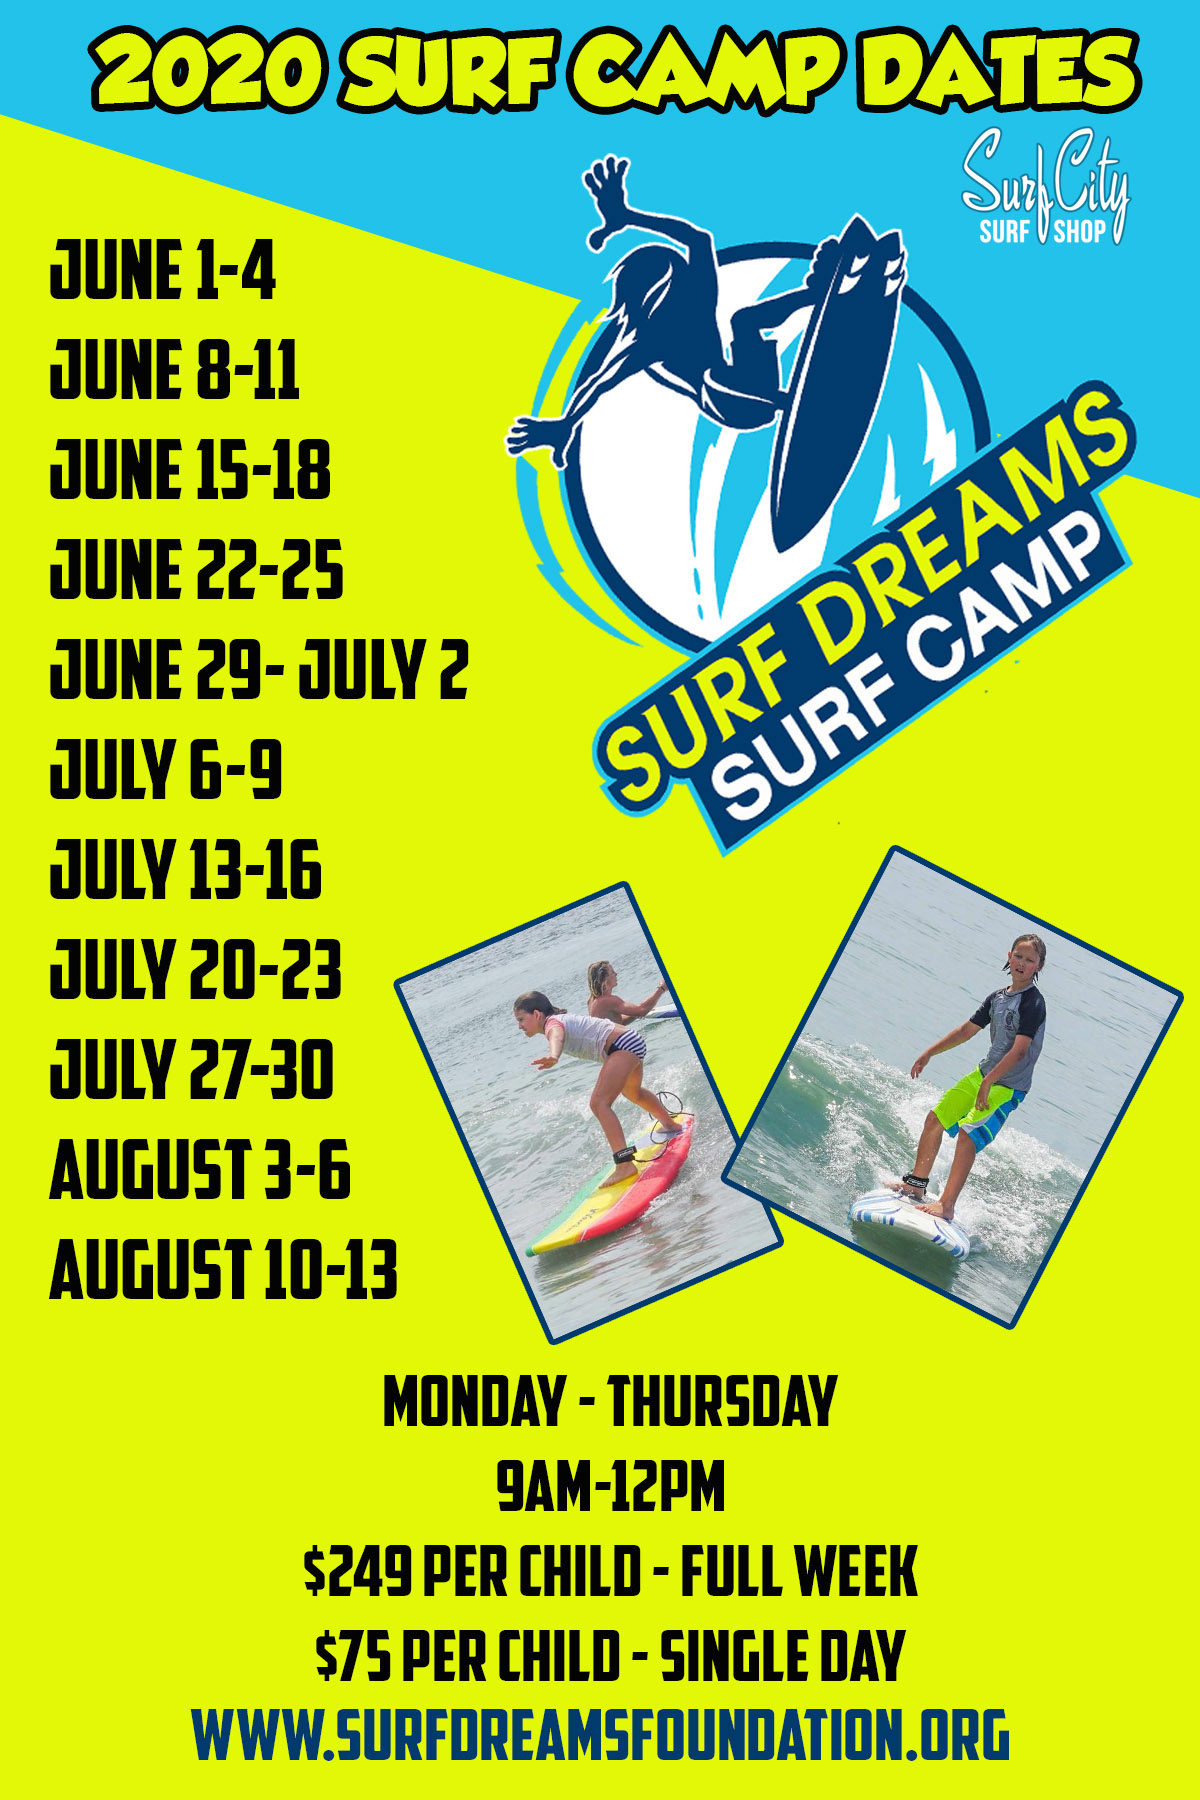 Surf camp dates